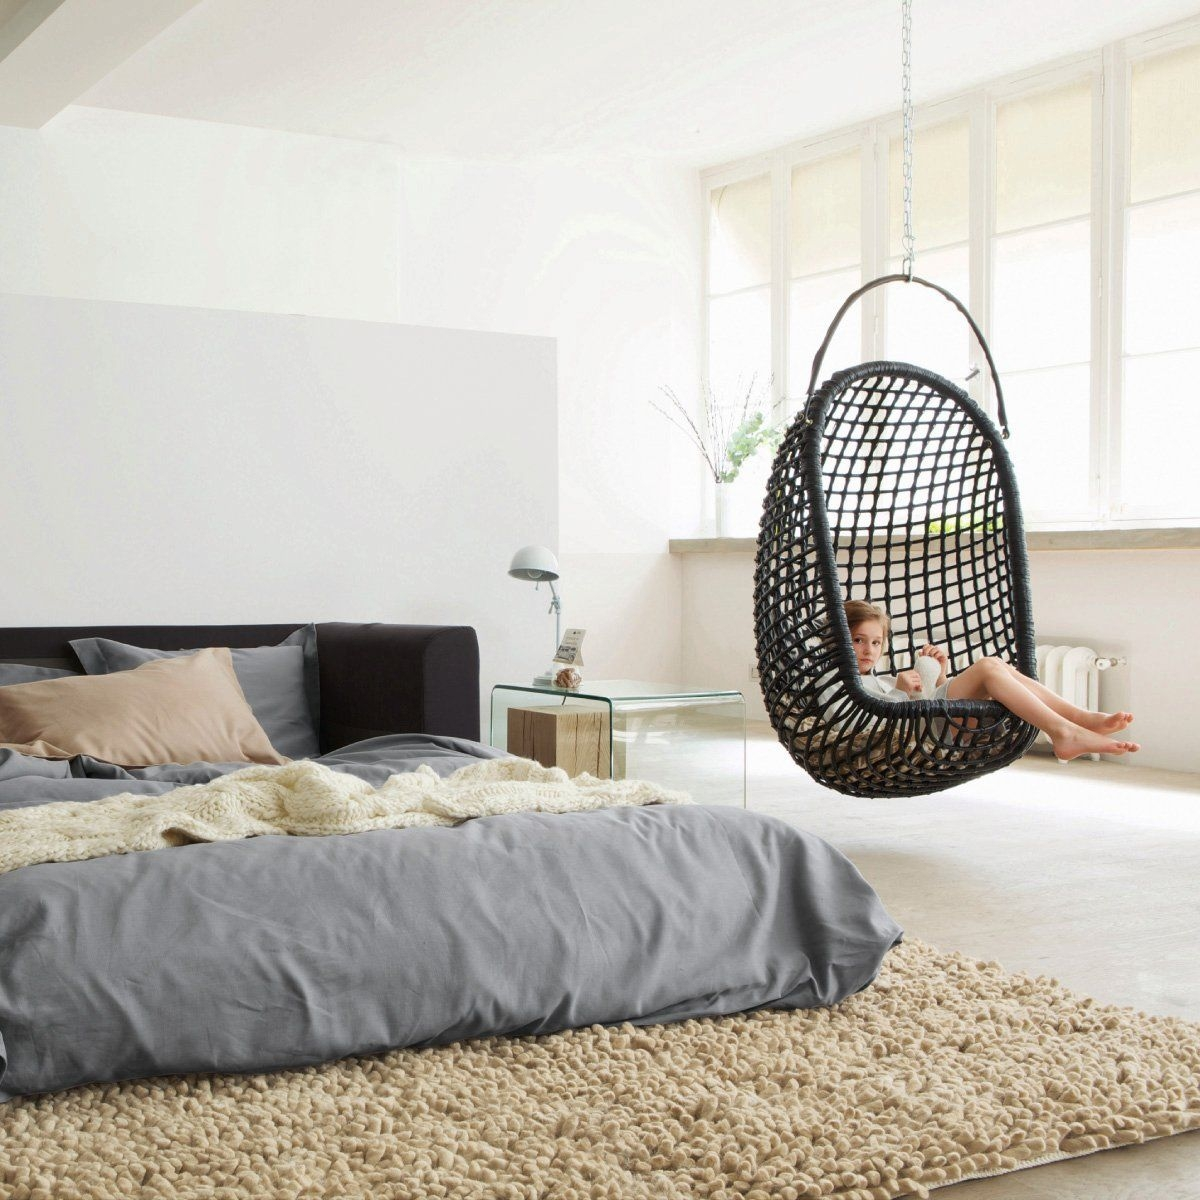 Hanging Chair For Bedroom - Home Design & Hanging Chair For Bedroom - Visual Hunt